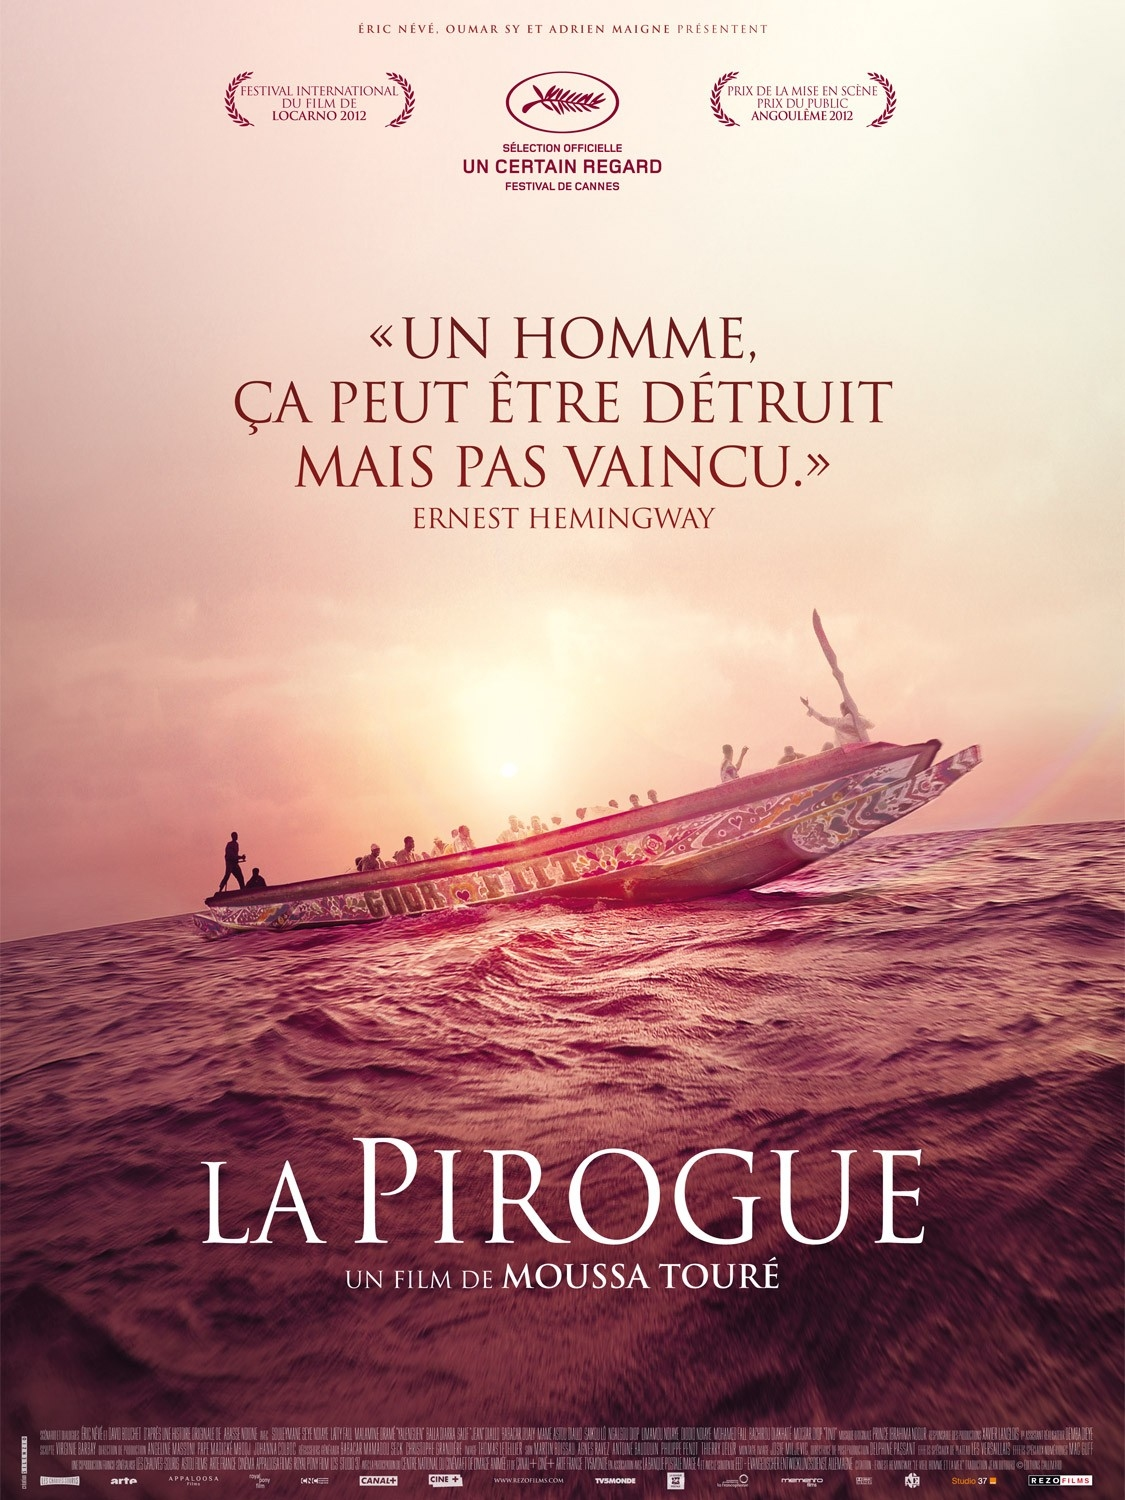 The Pirogue - Movie Poster #1 (Original)